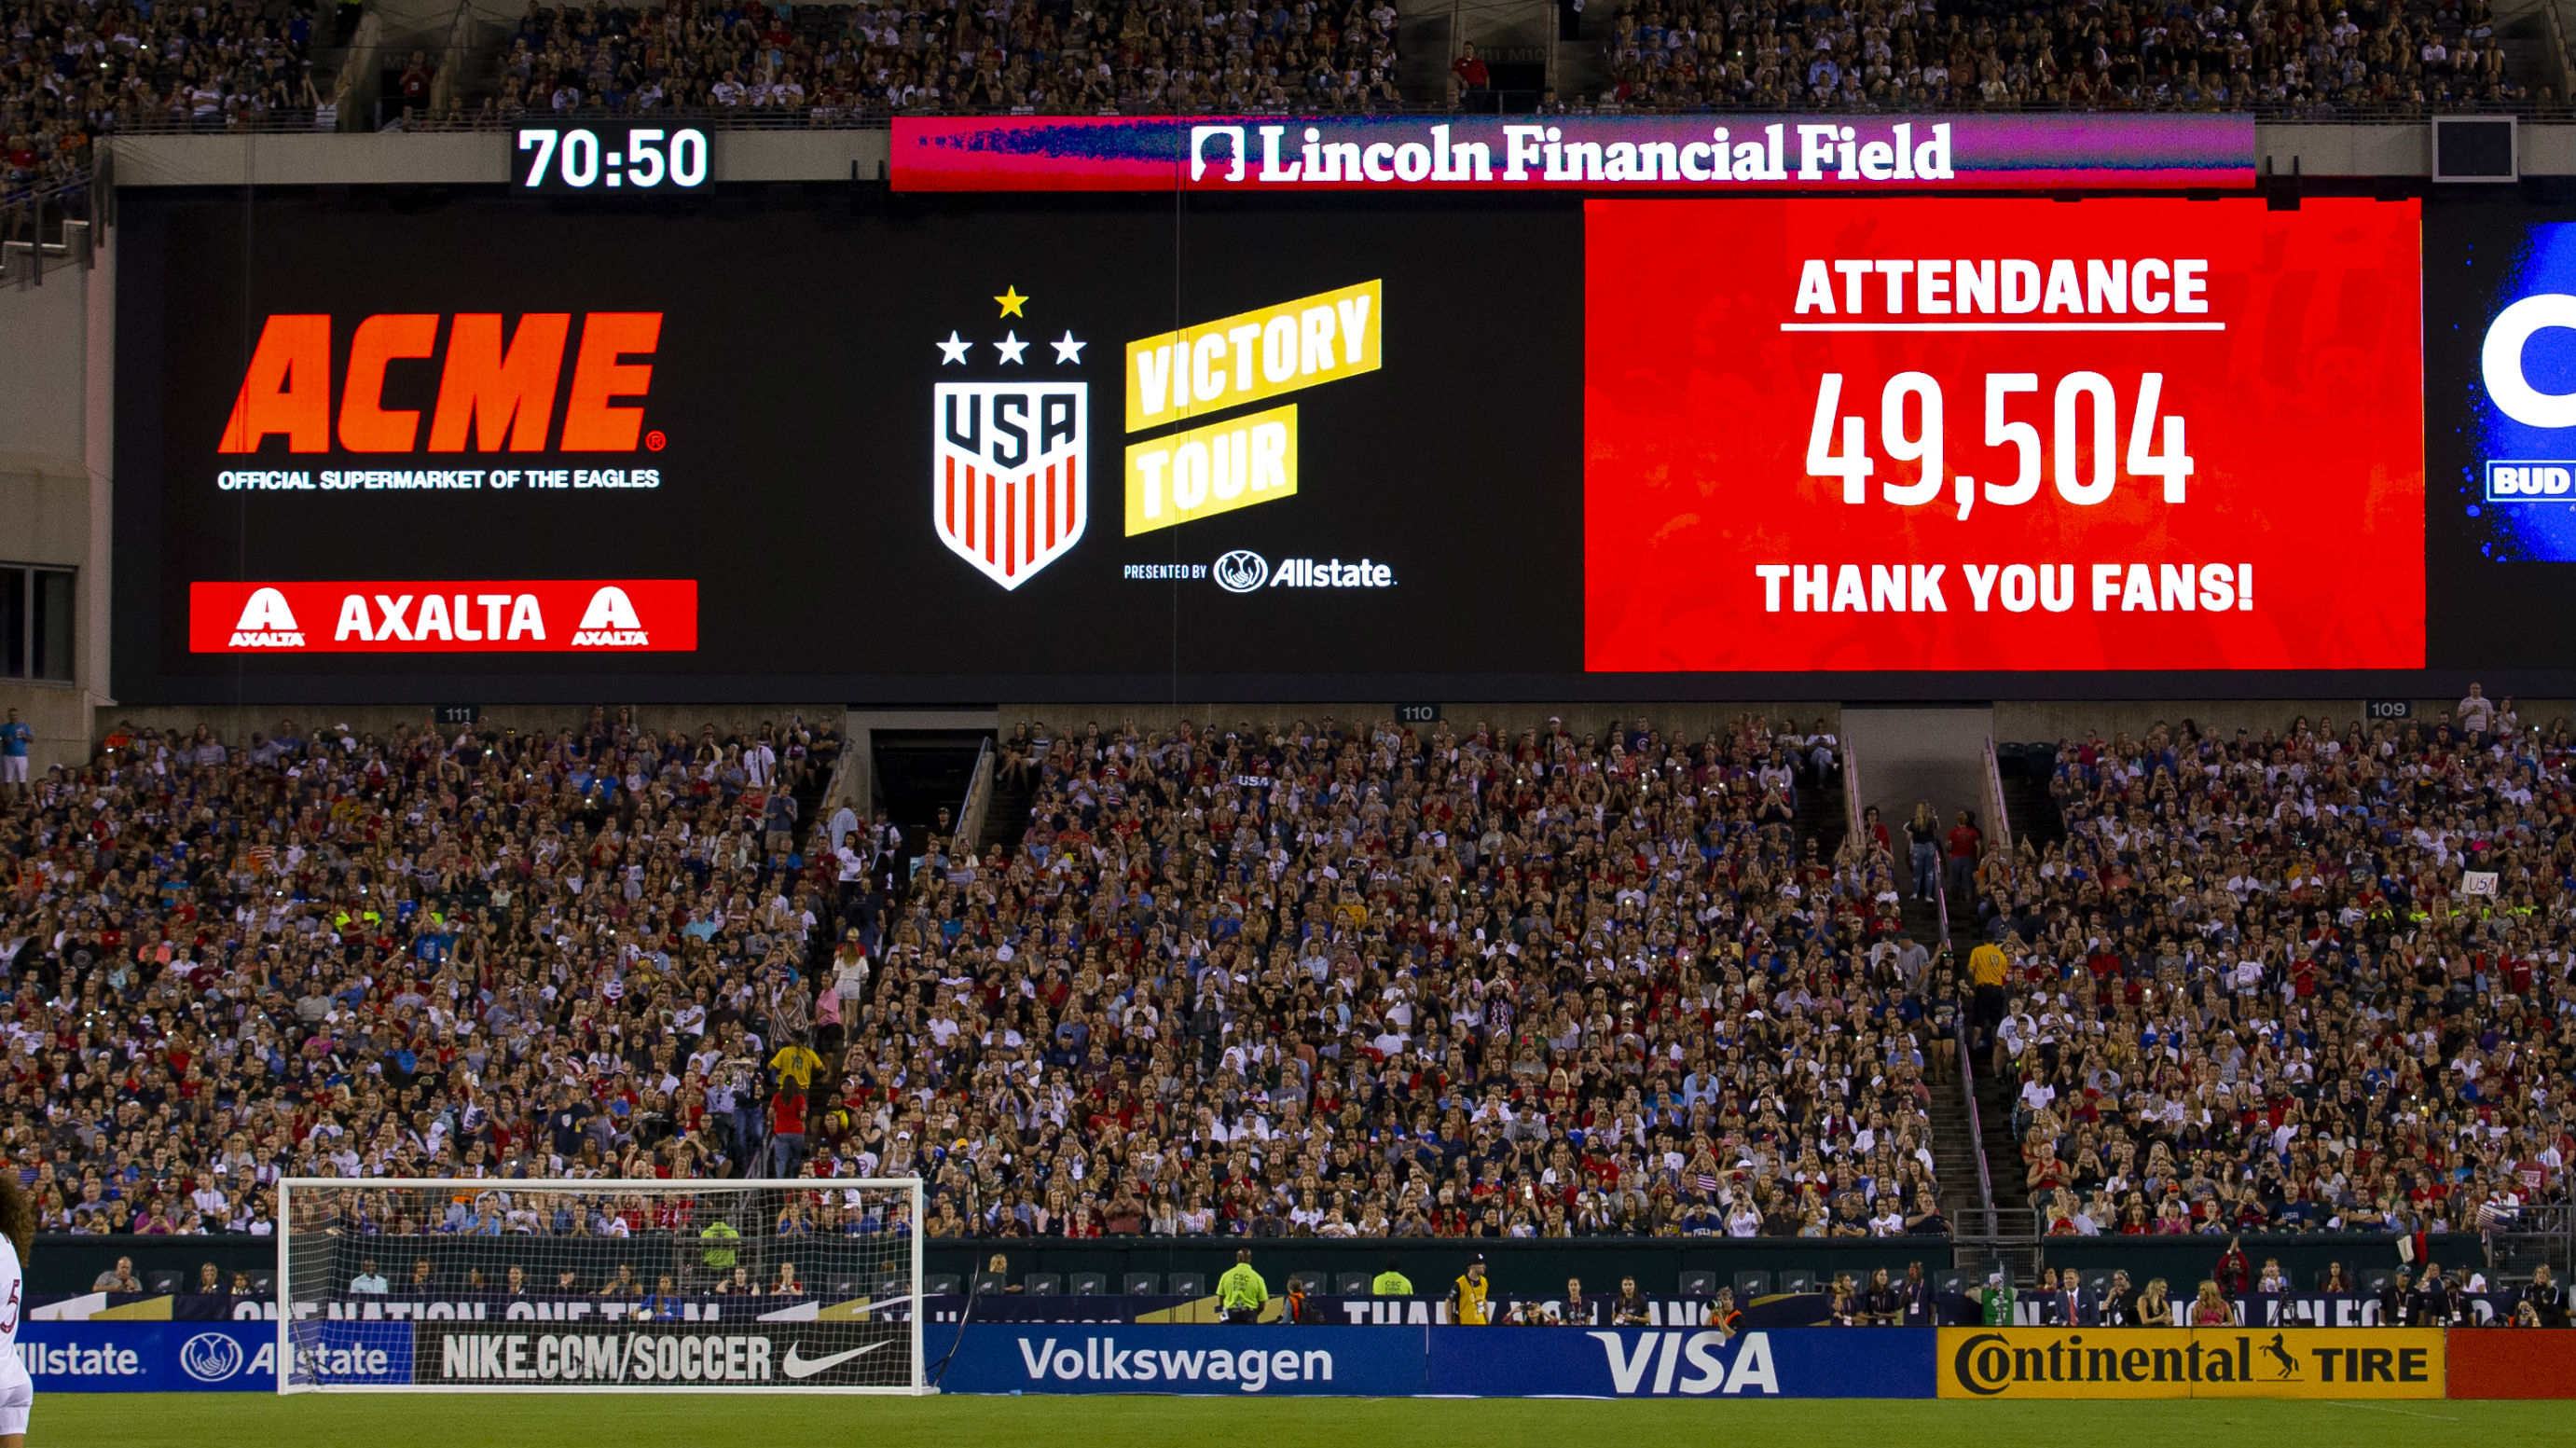 USWNT attendence